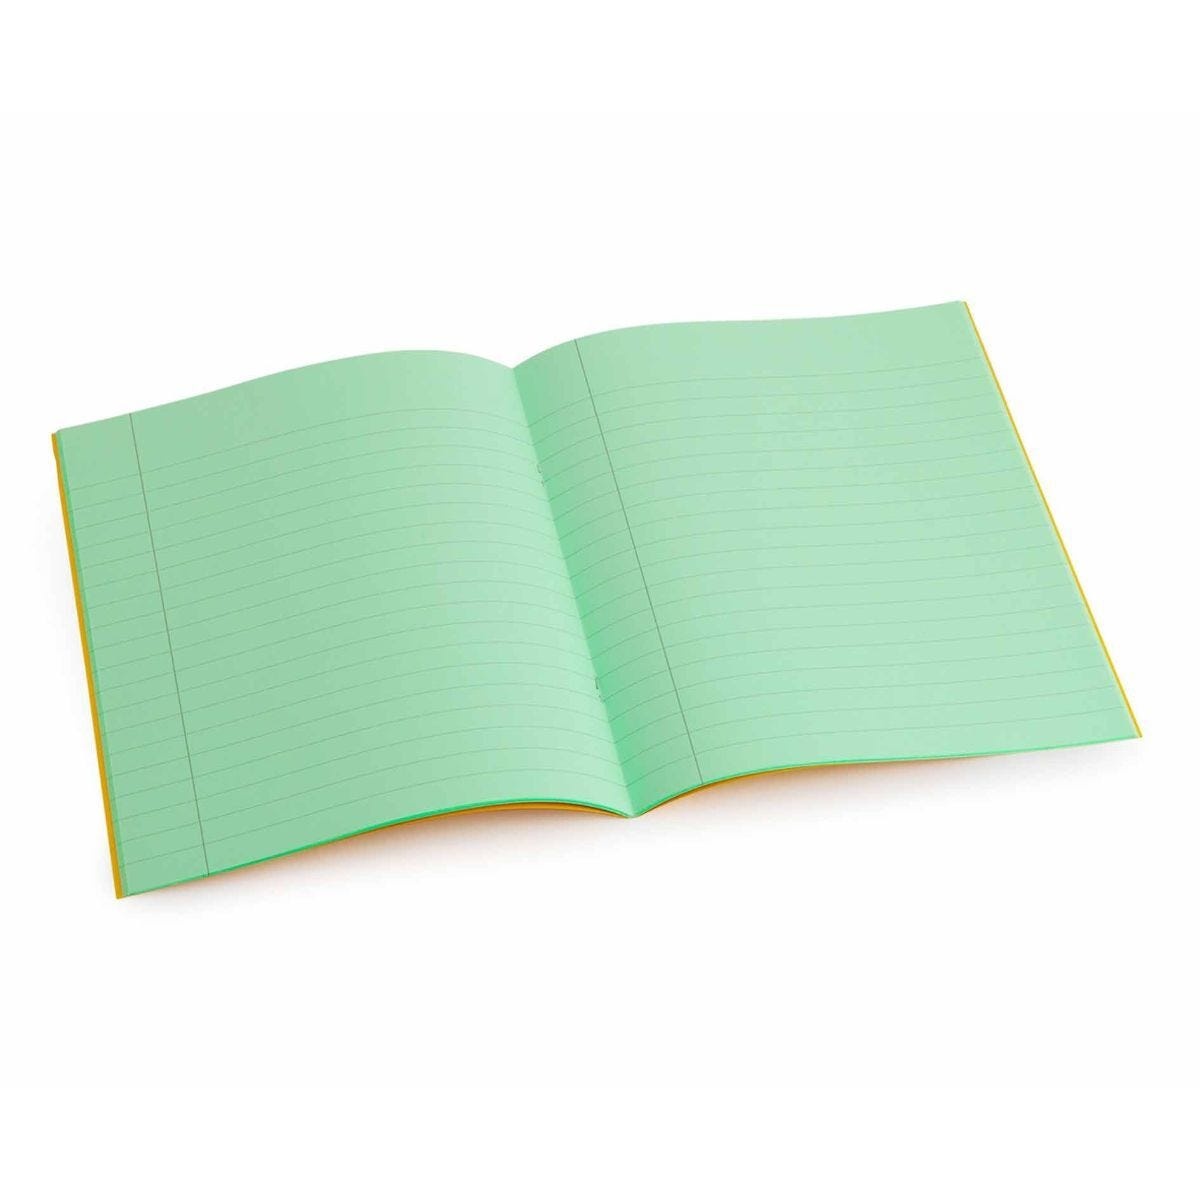 Tinted Exercise Book Standard 7x9 Lined 10mm Apple Green